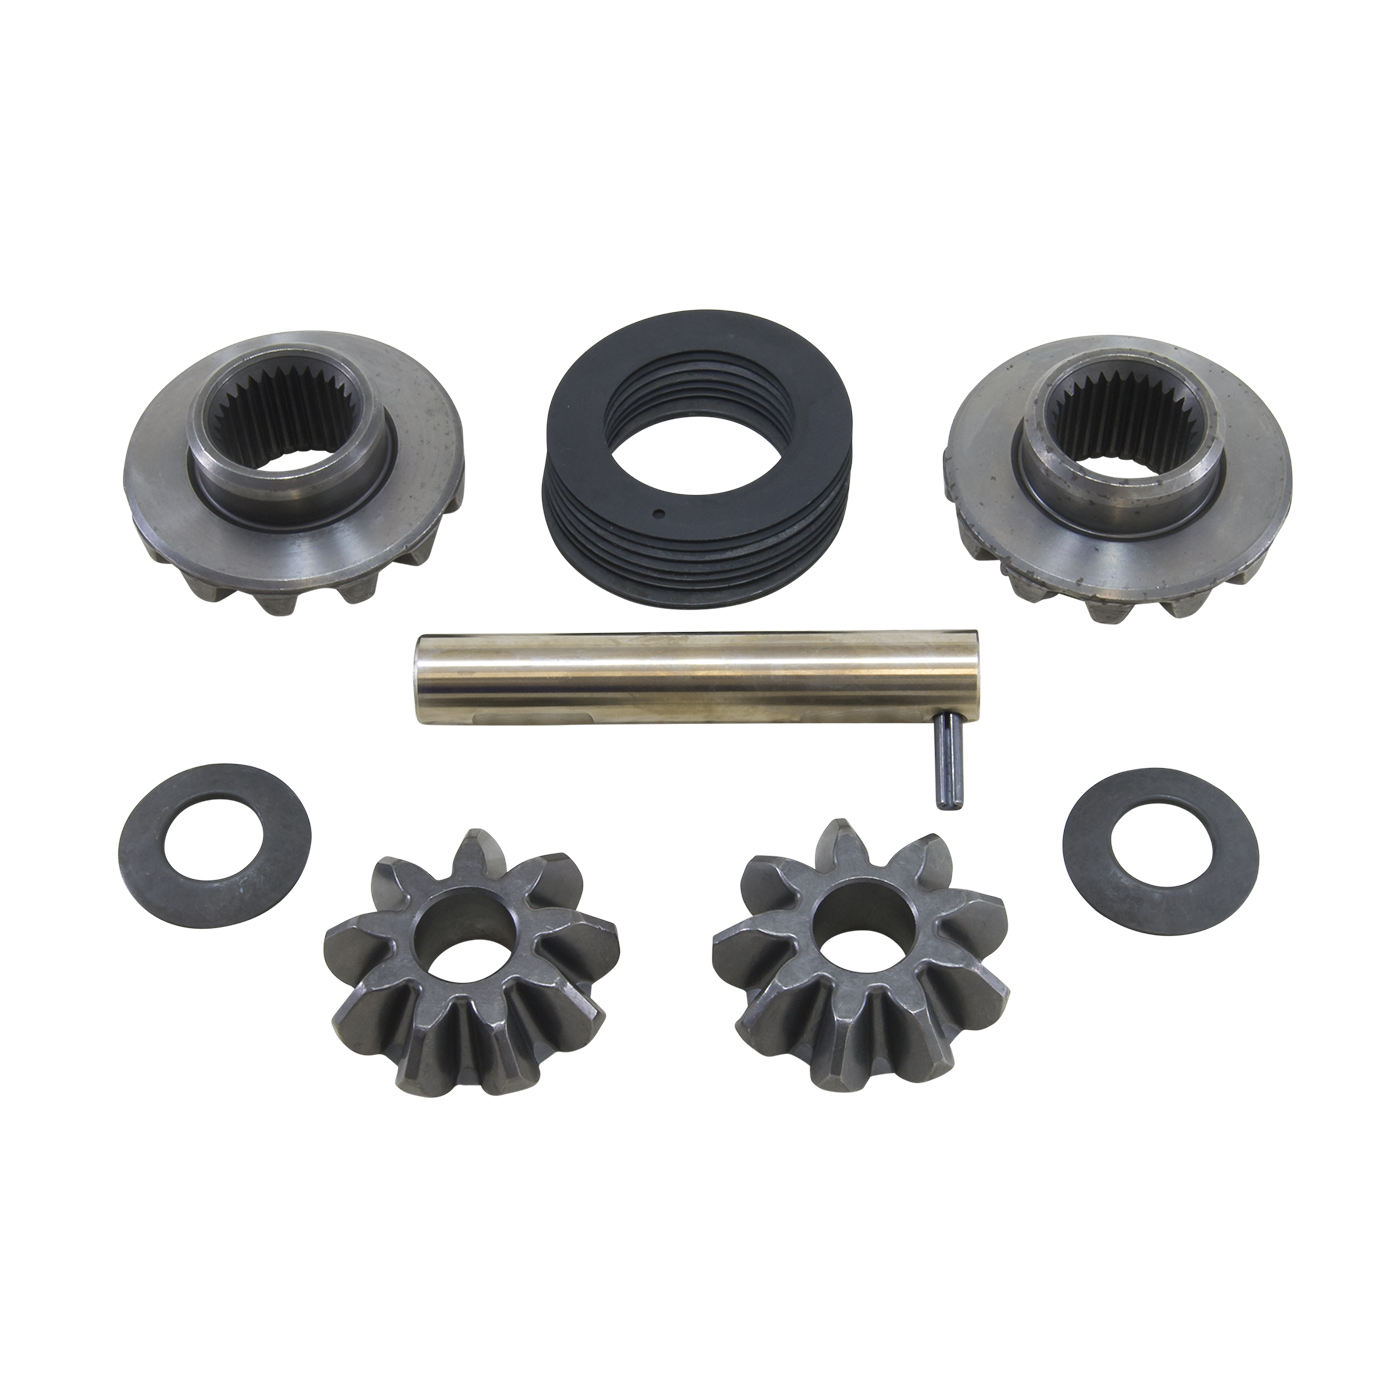 YPKC8.0-S-29 - Yukon standard open spider gear kit for 8